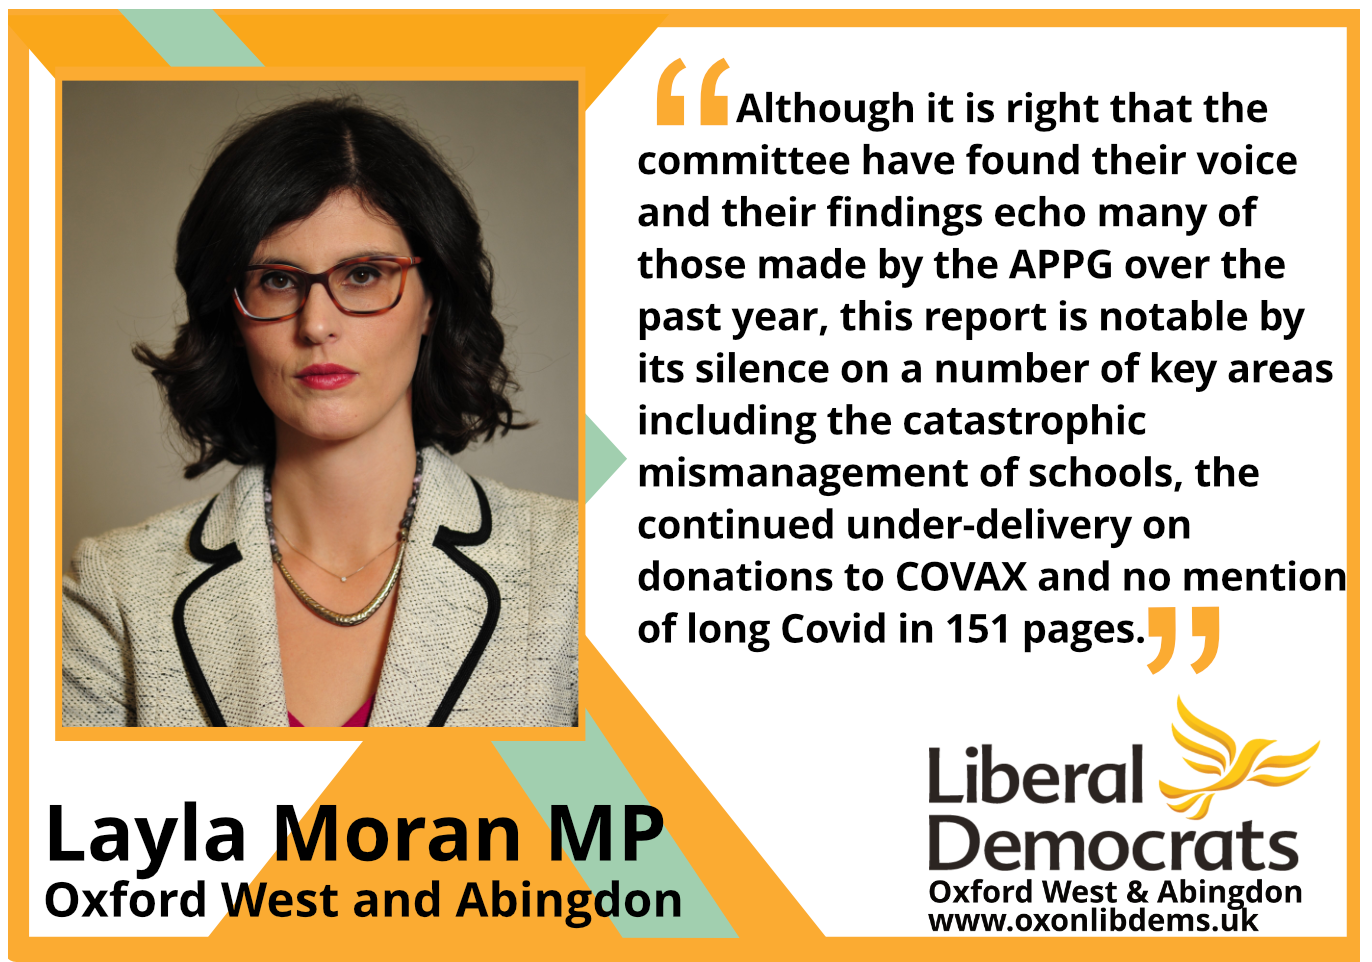 key_Although it is right that the committee have found their voice and their findings echo many of those made by the APPG over the past year, this report is notable by its silence on a number of key areas including the catastrophic mismanagement of schools, the continued under-delivery on donations to COVAX and no mention of long Covid in 151 pages